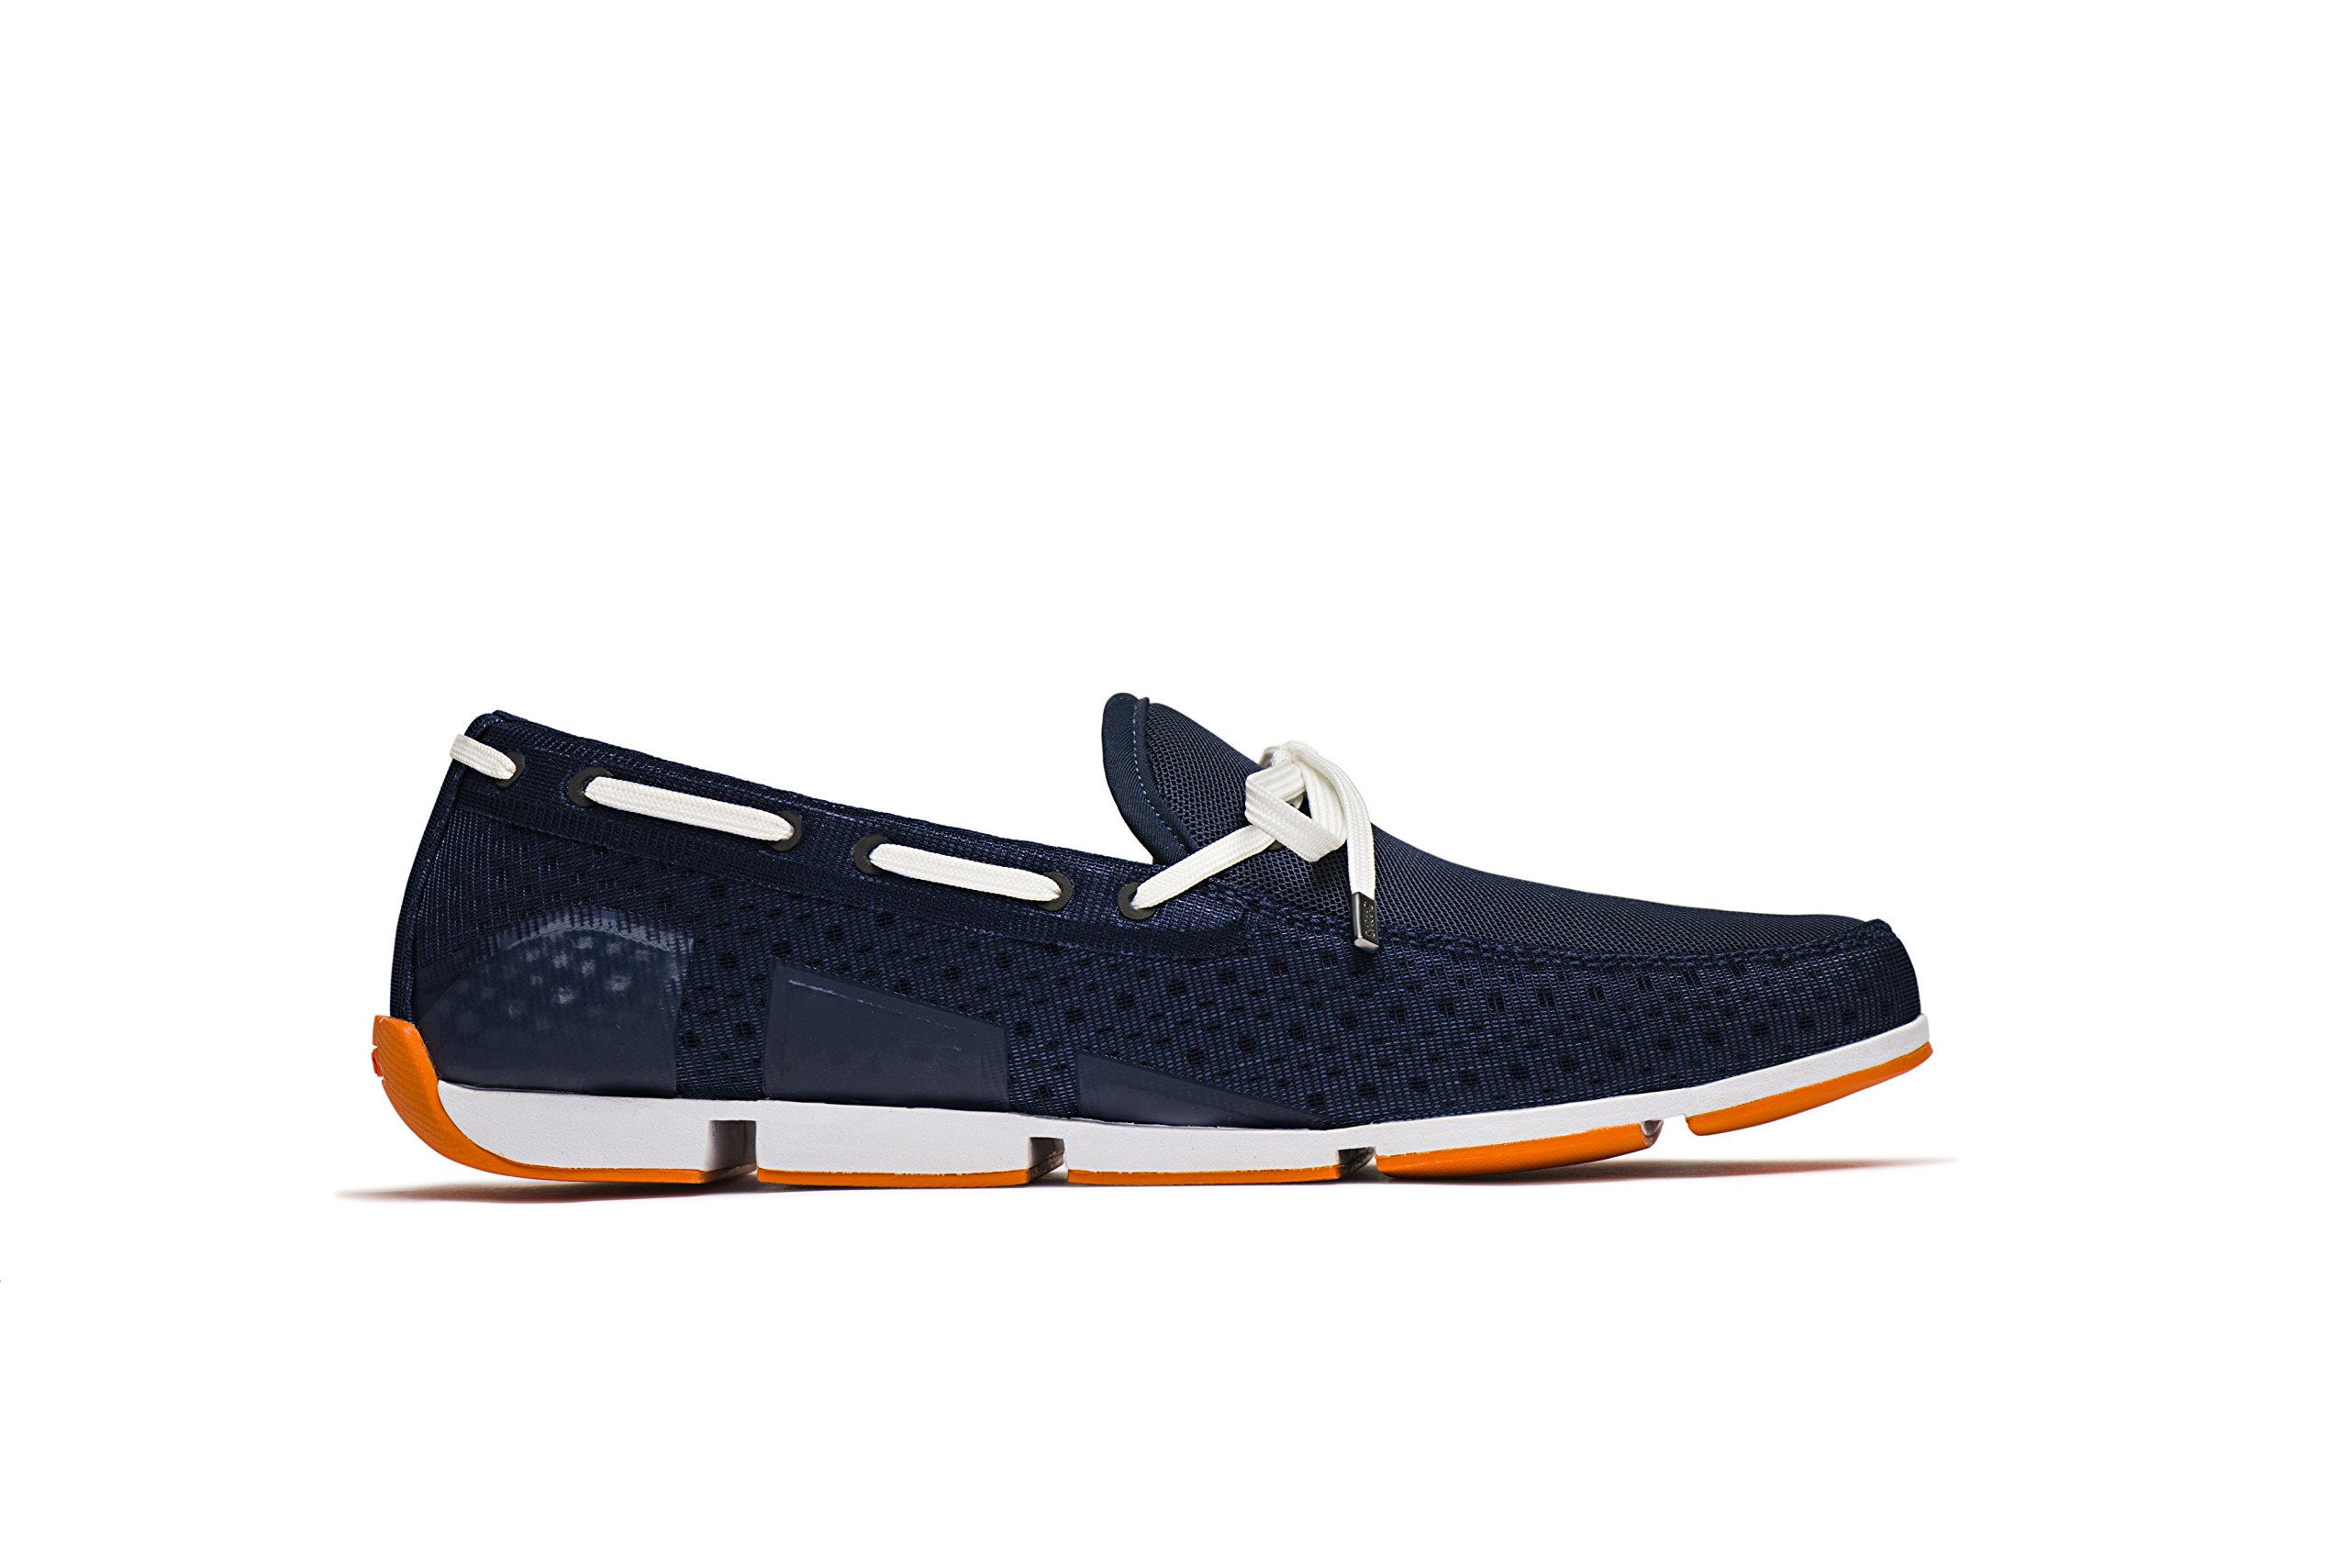 SWIMS Men's Breeze Loafer for Pool and Summer - Navy, 11